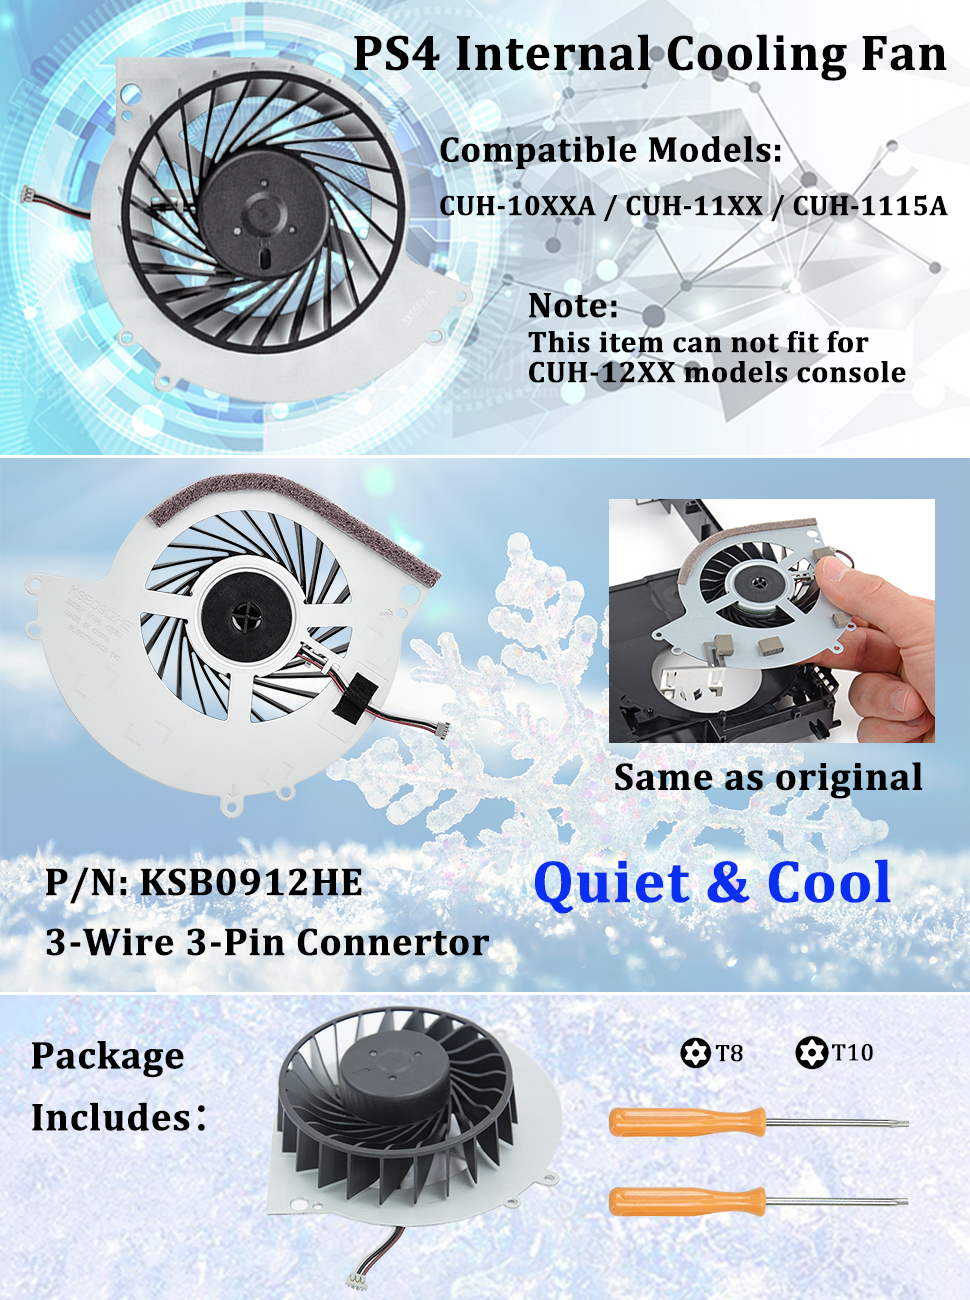 Amazon com: Replacement Internal Cooling Fan KSB0912HE for PS4 CUH